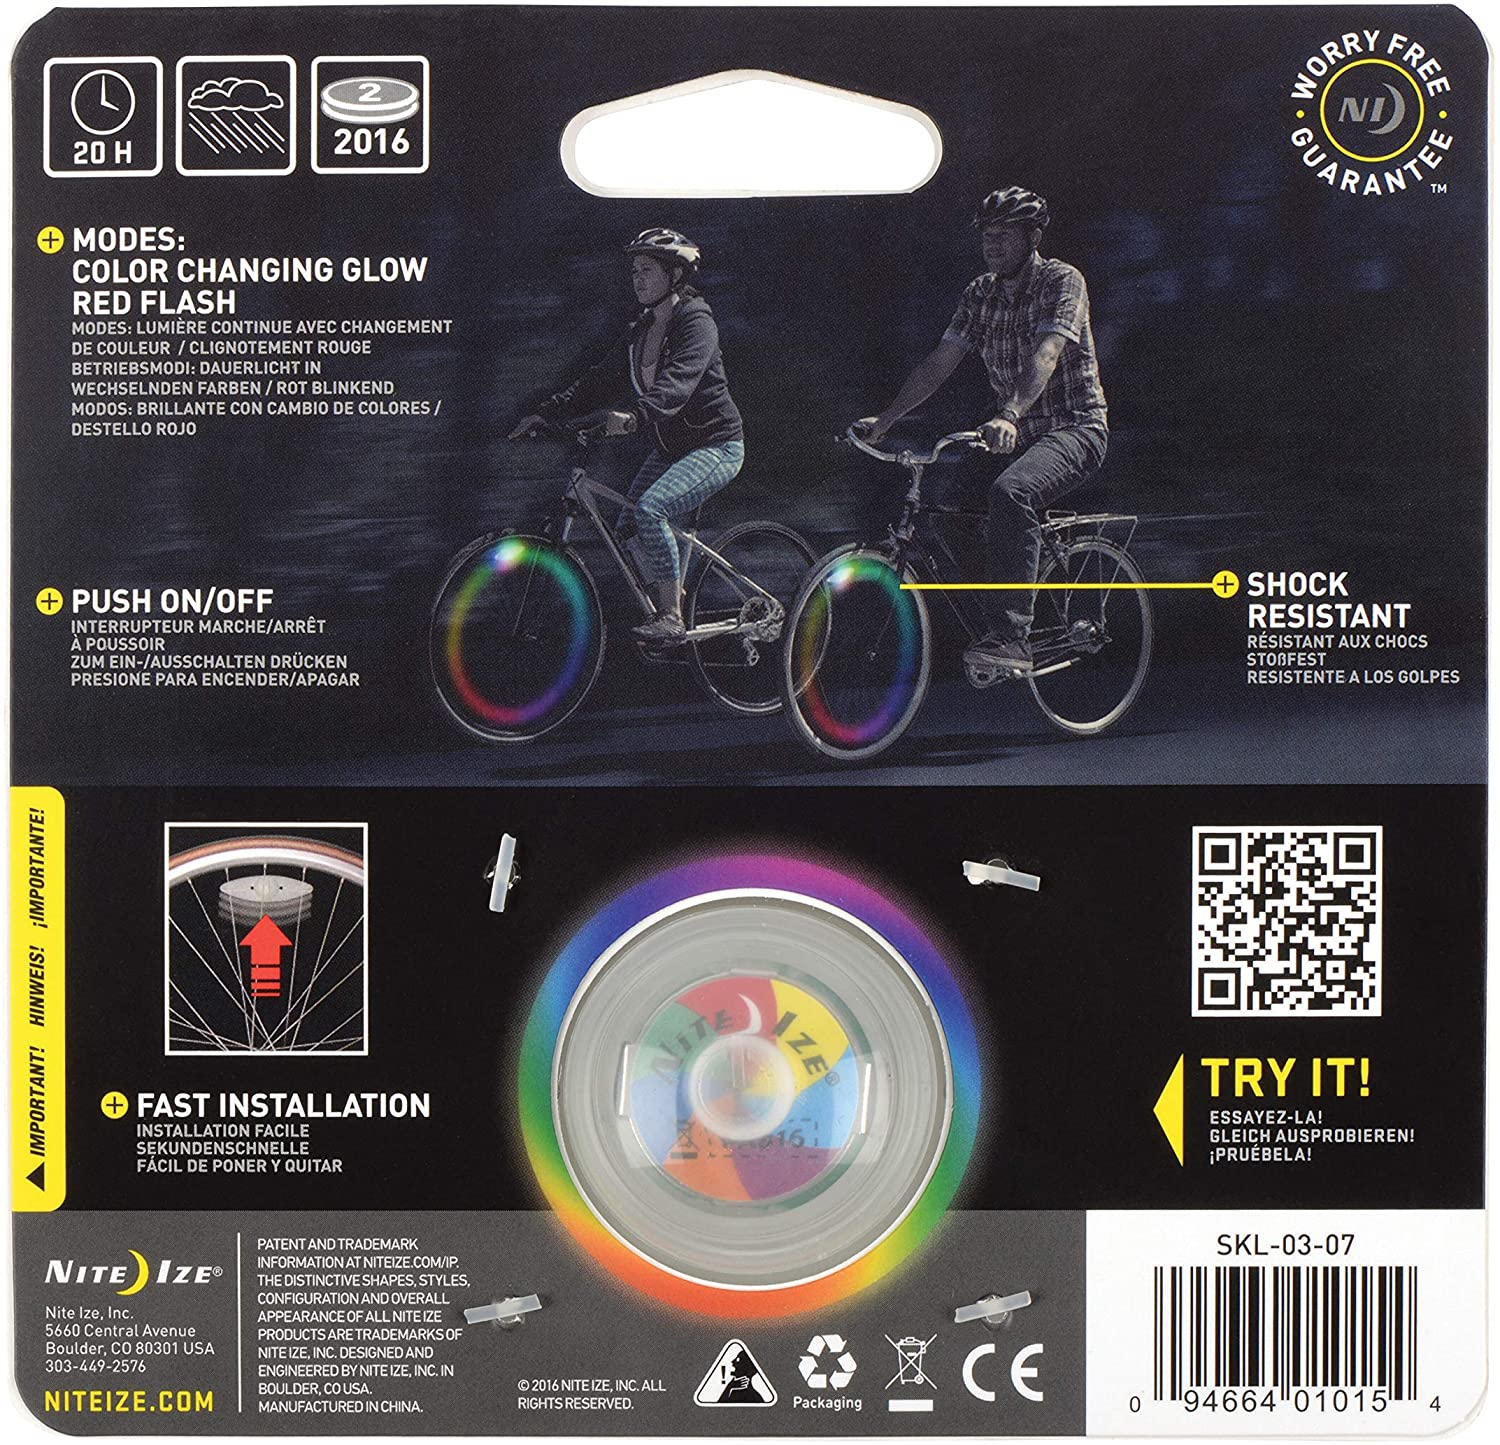 NiteIze SpokeLit® LED Wheel Light - Disc-O - 1 Pack